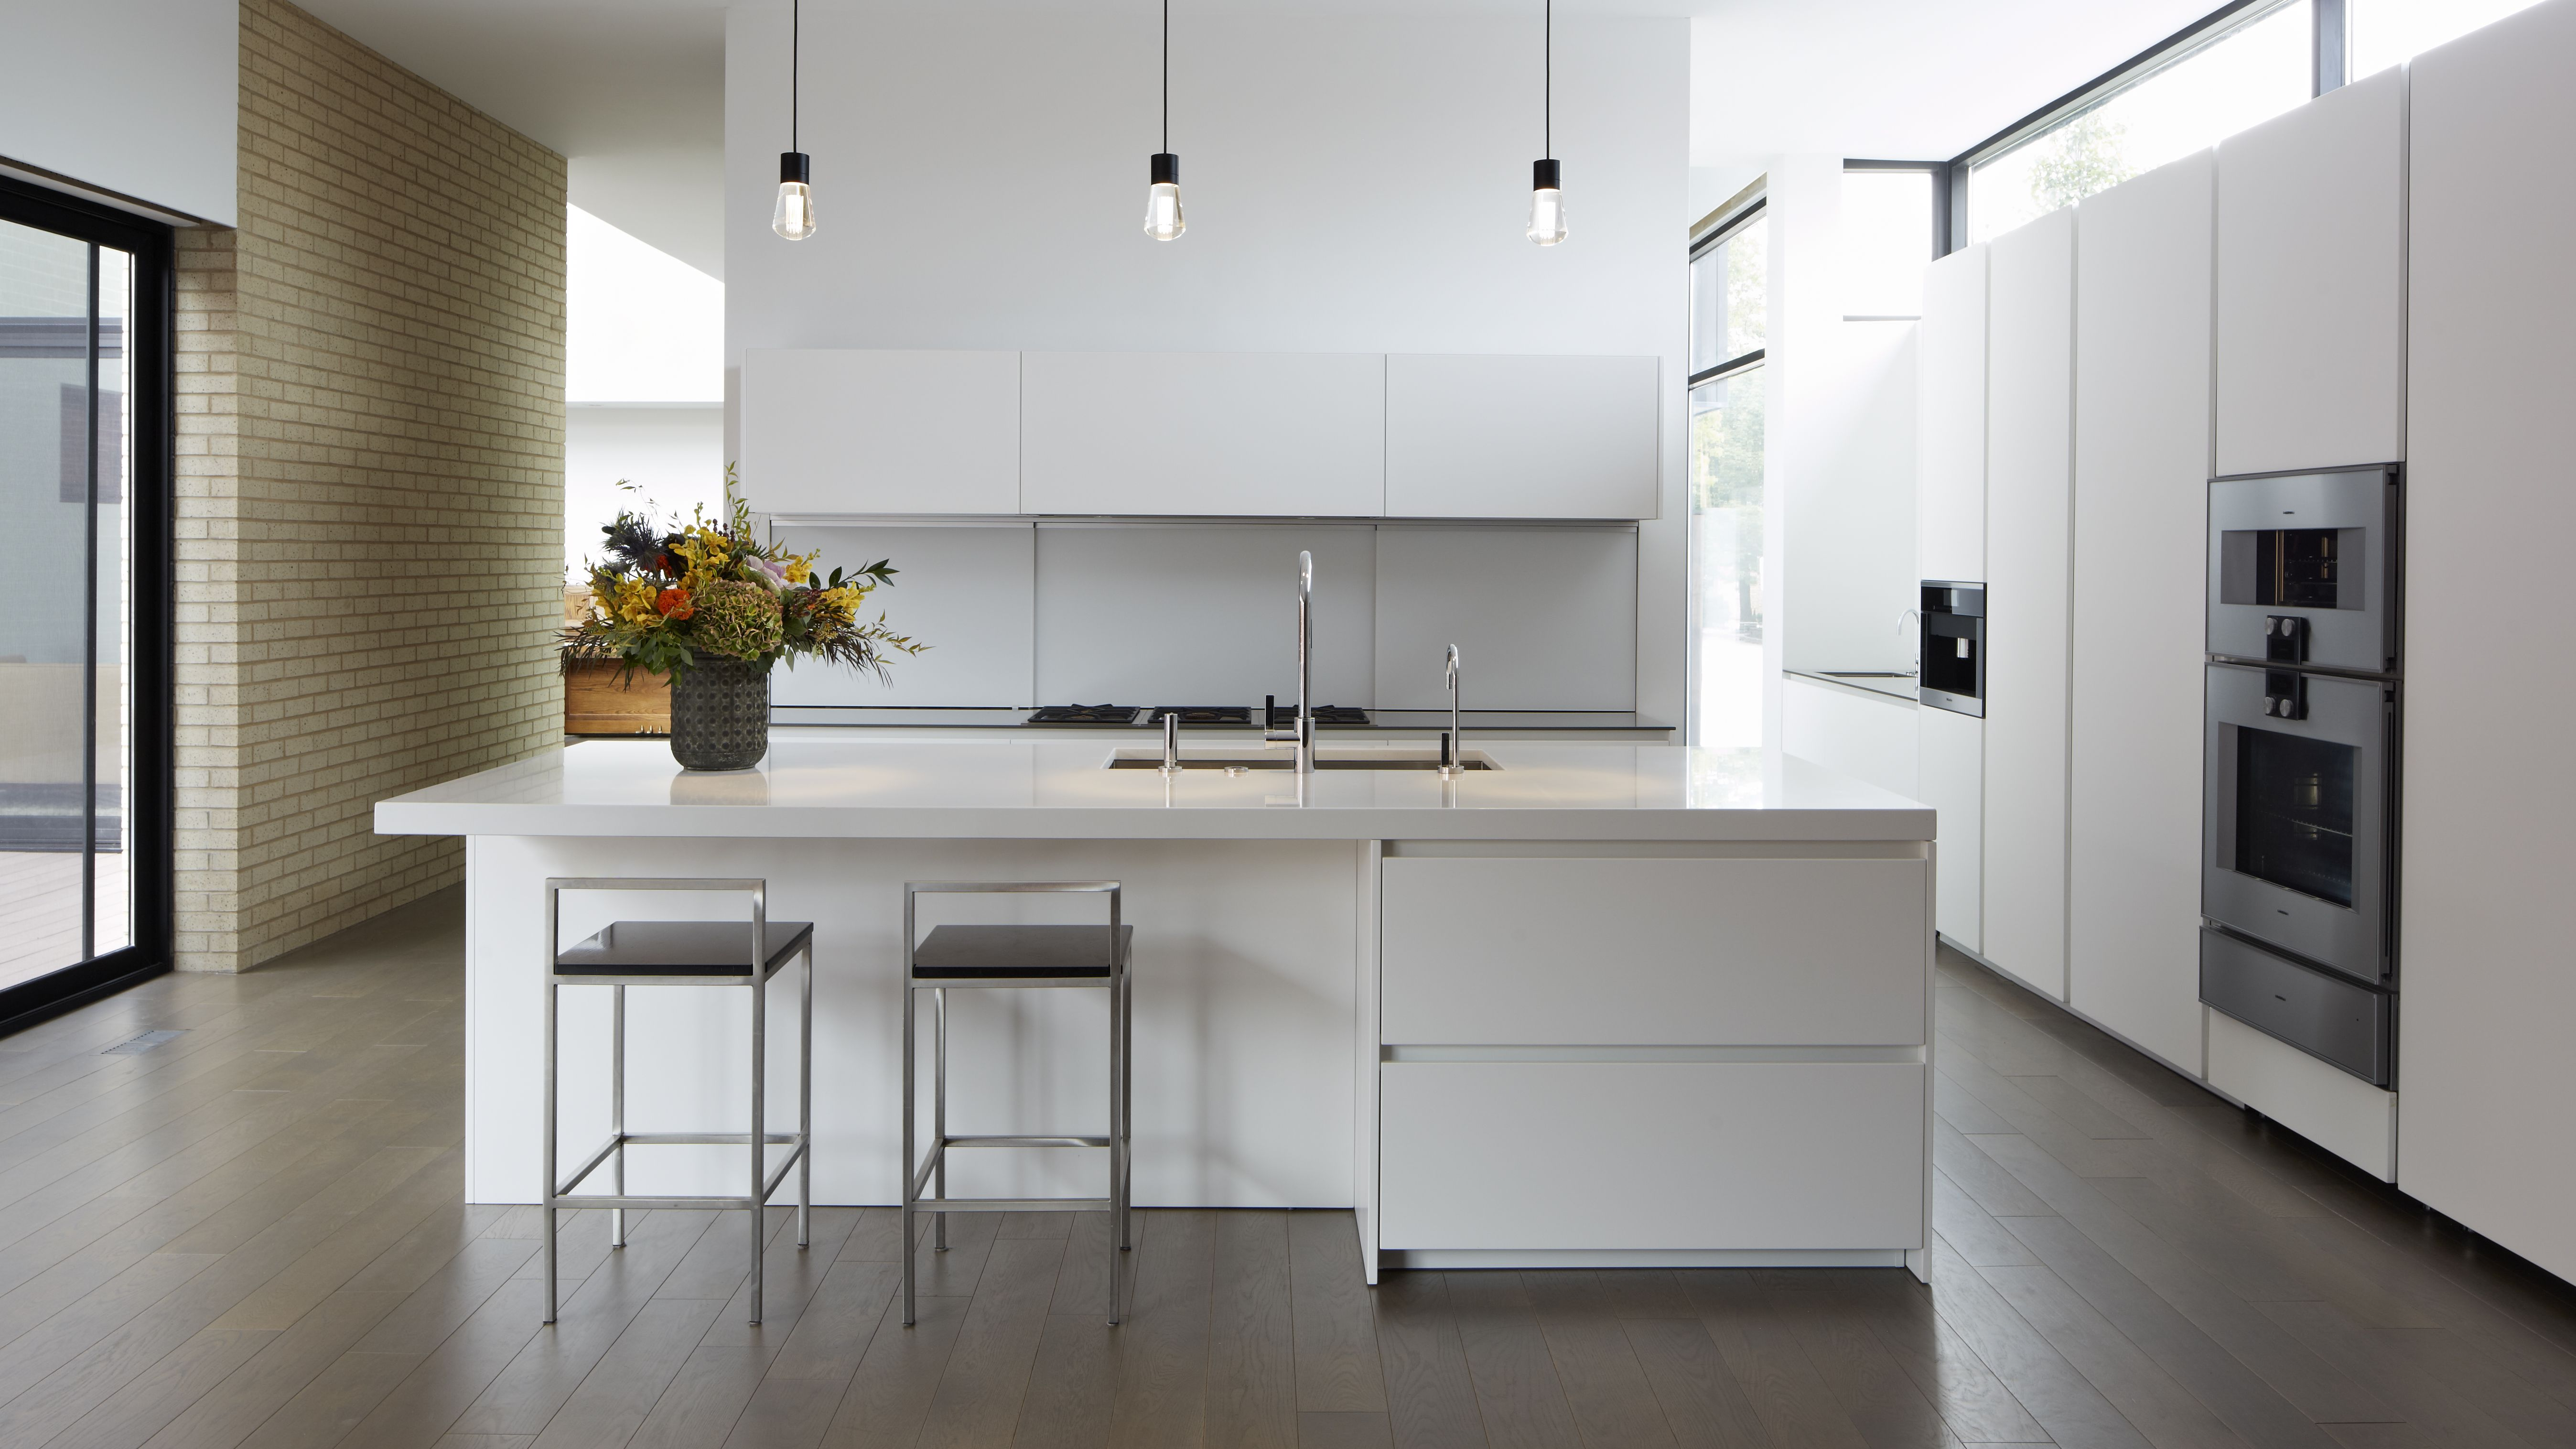 Minimalist Kitchens To Inspire You